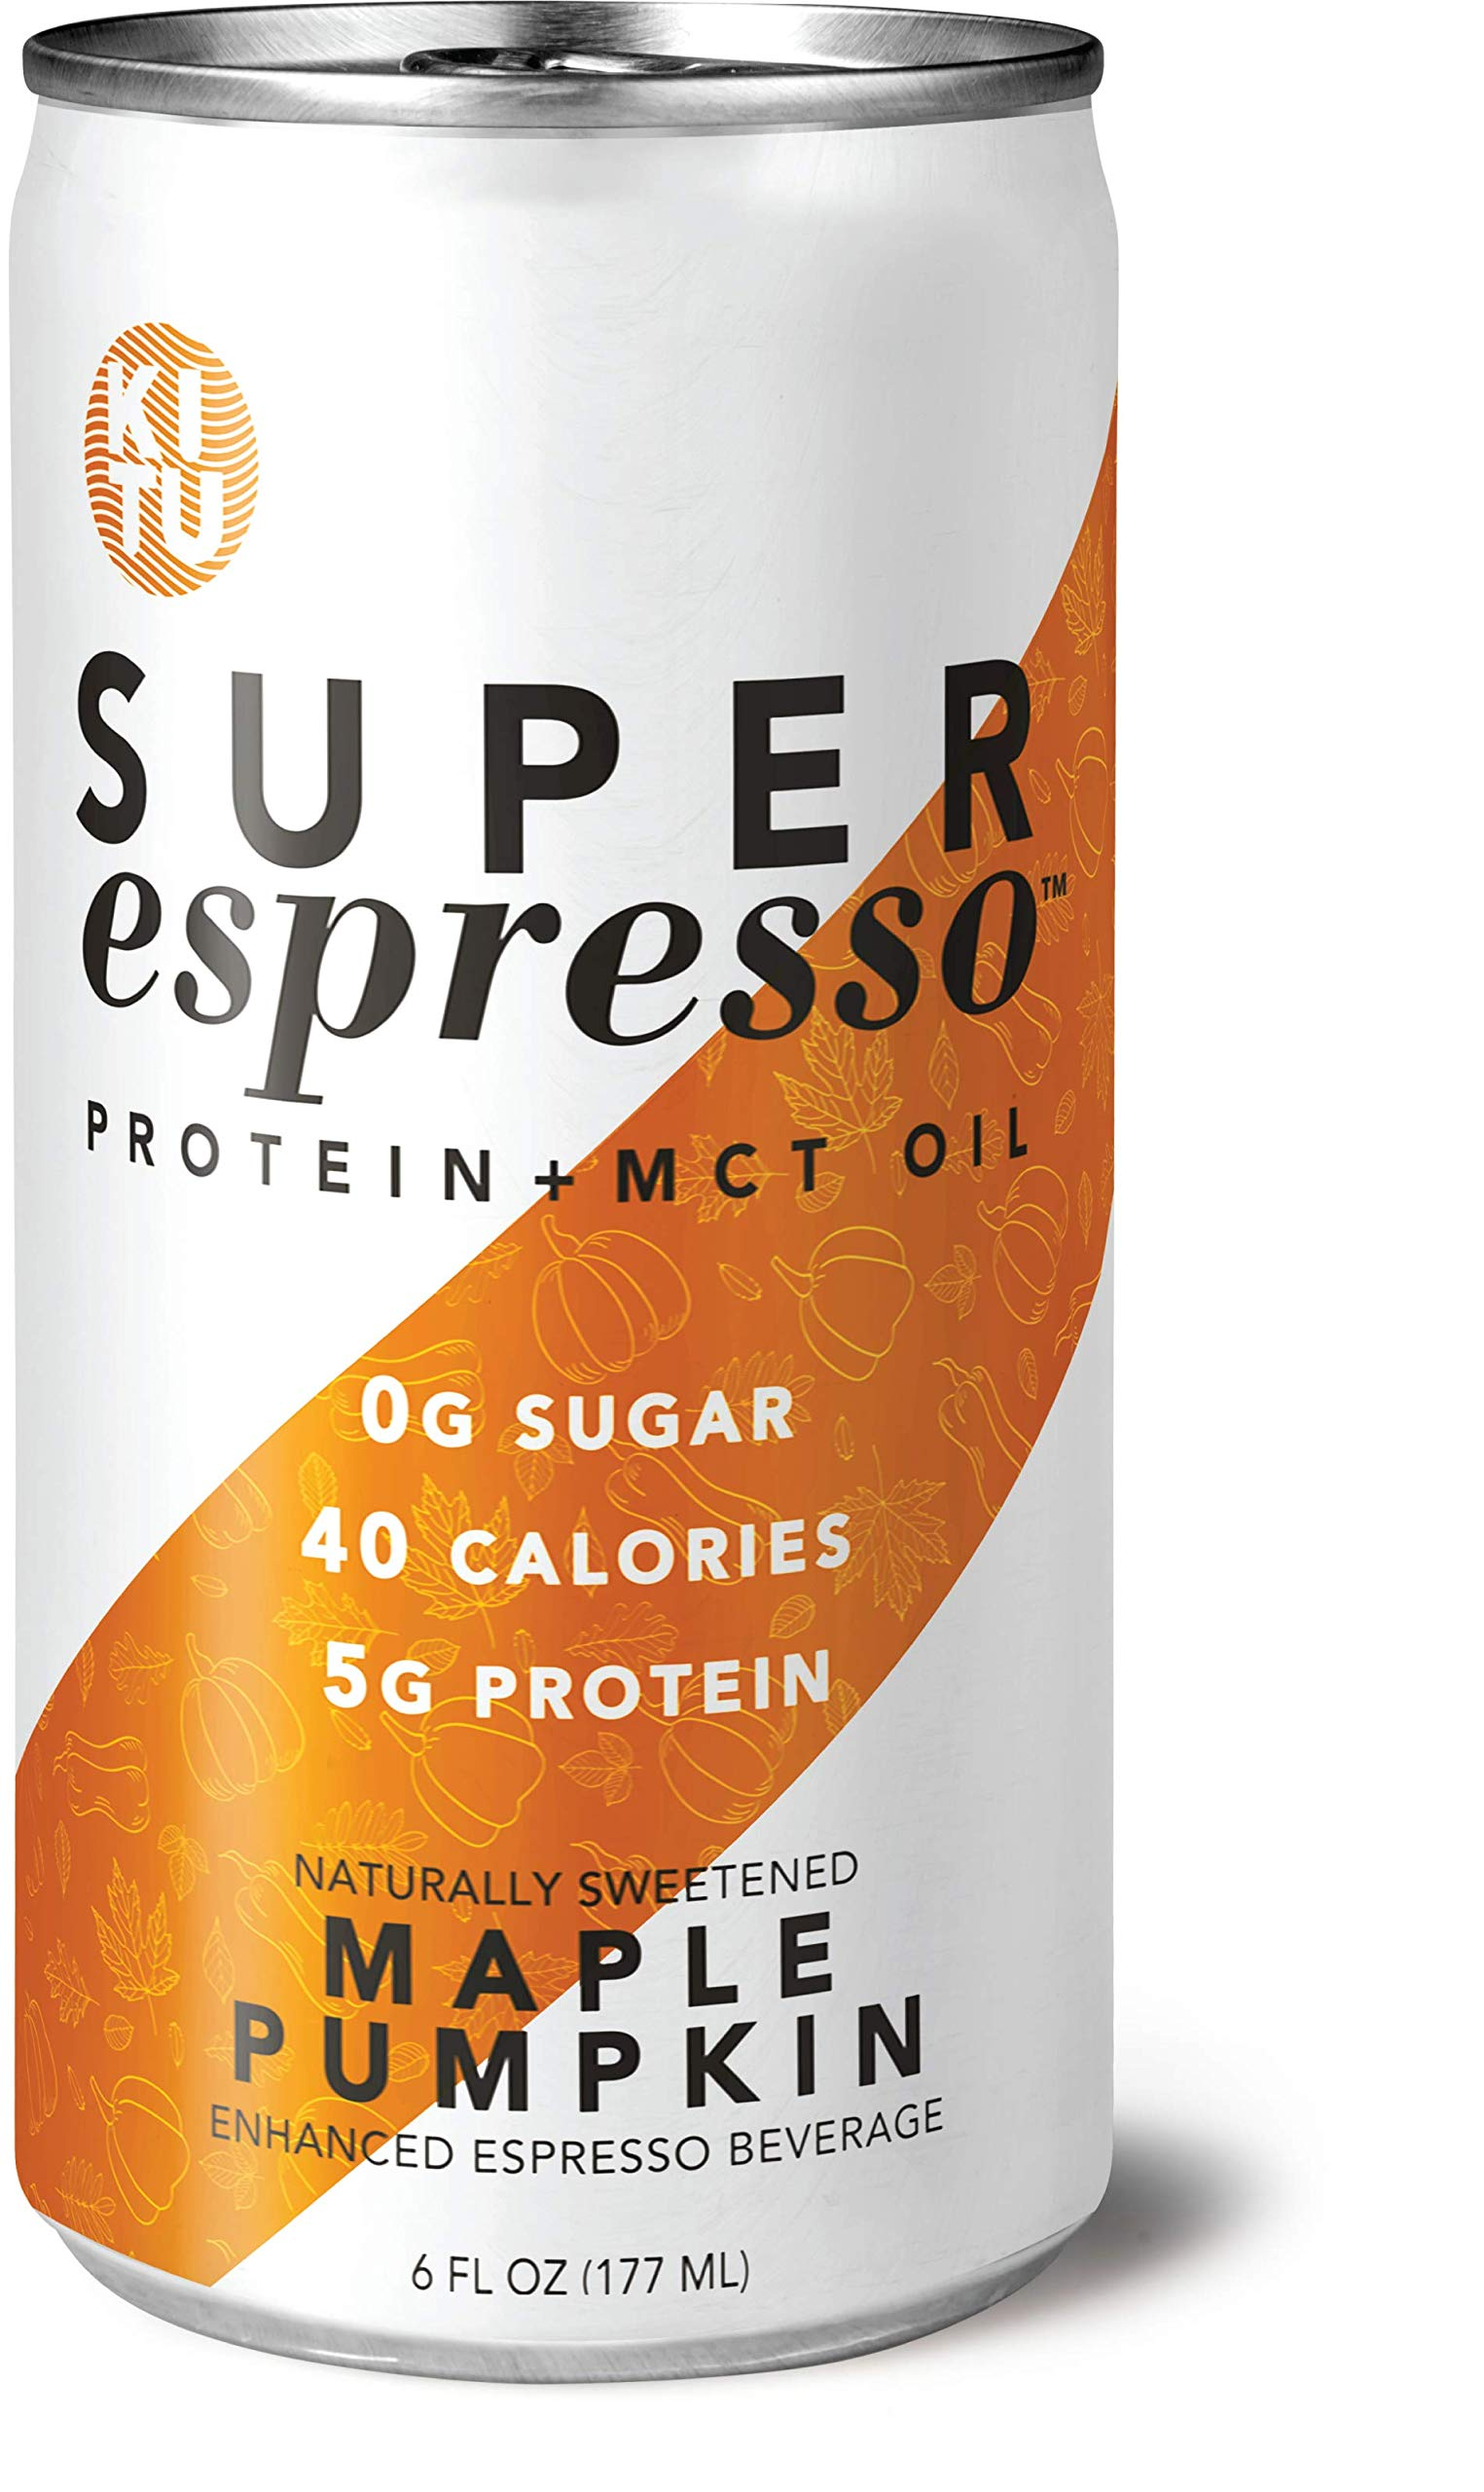 Kitu by SUNNIVA Maple Pumpkin Super Espresso with Protein and MCT Oil, Keto Approved, 0g Sugar, 5g Protein, 40 Calories, 6 fl. oz, Pack of 12 by KITU Super Coffee